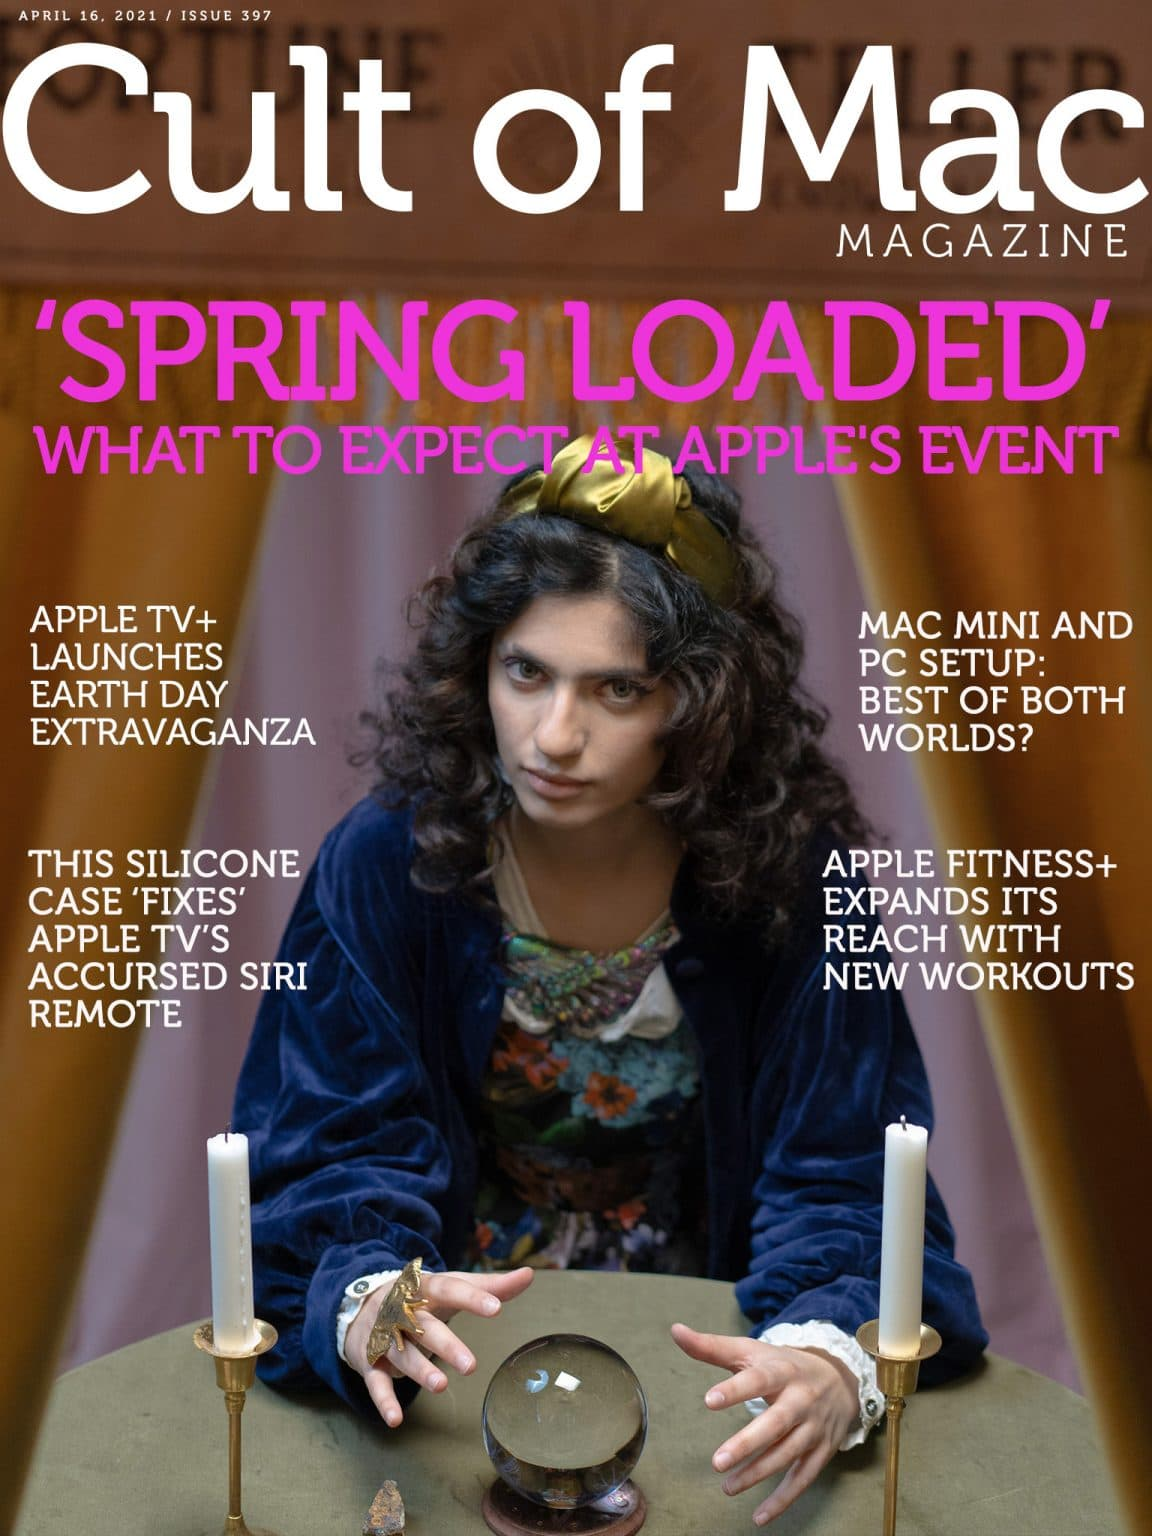 Apple Spring Loaded event predictions: Let's bust out the crystal ball.